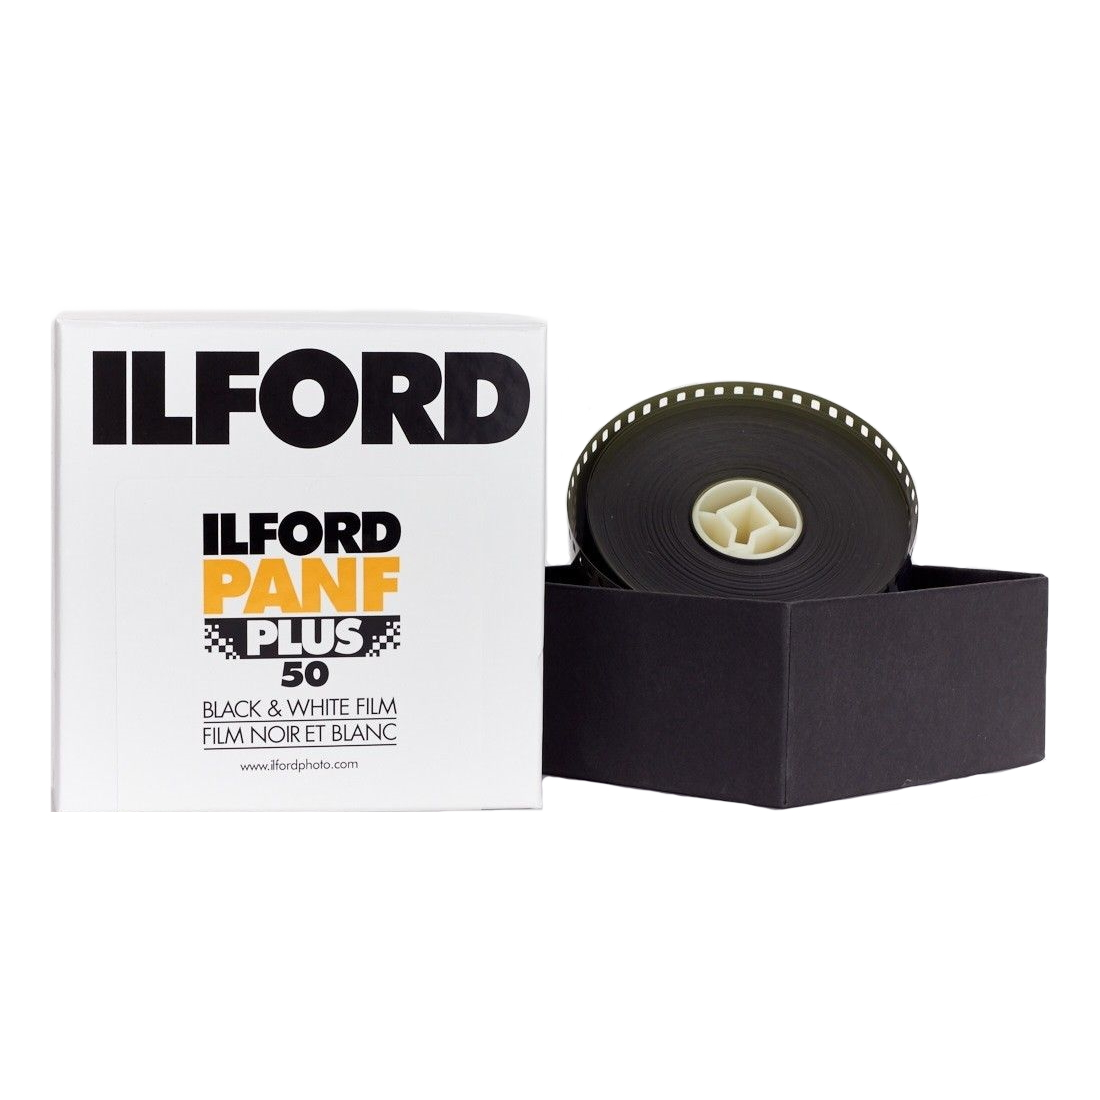 Ilford Pan F Plus ISO 50 35mm x 30.5m Black & White Film